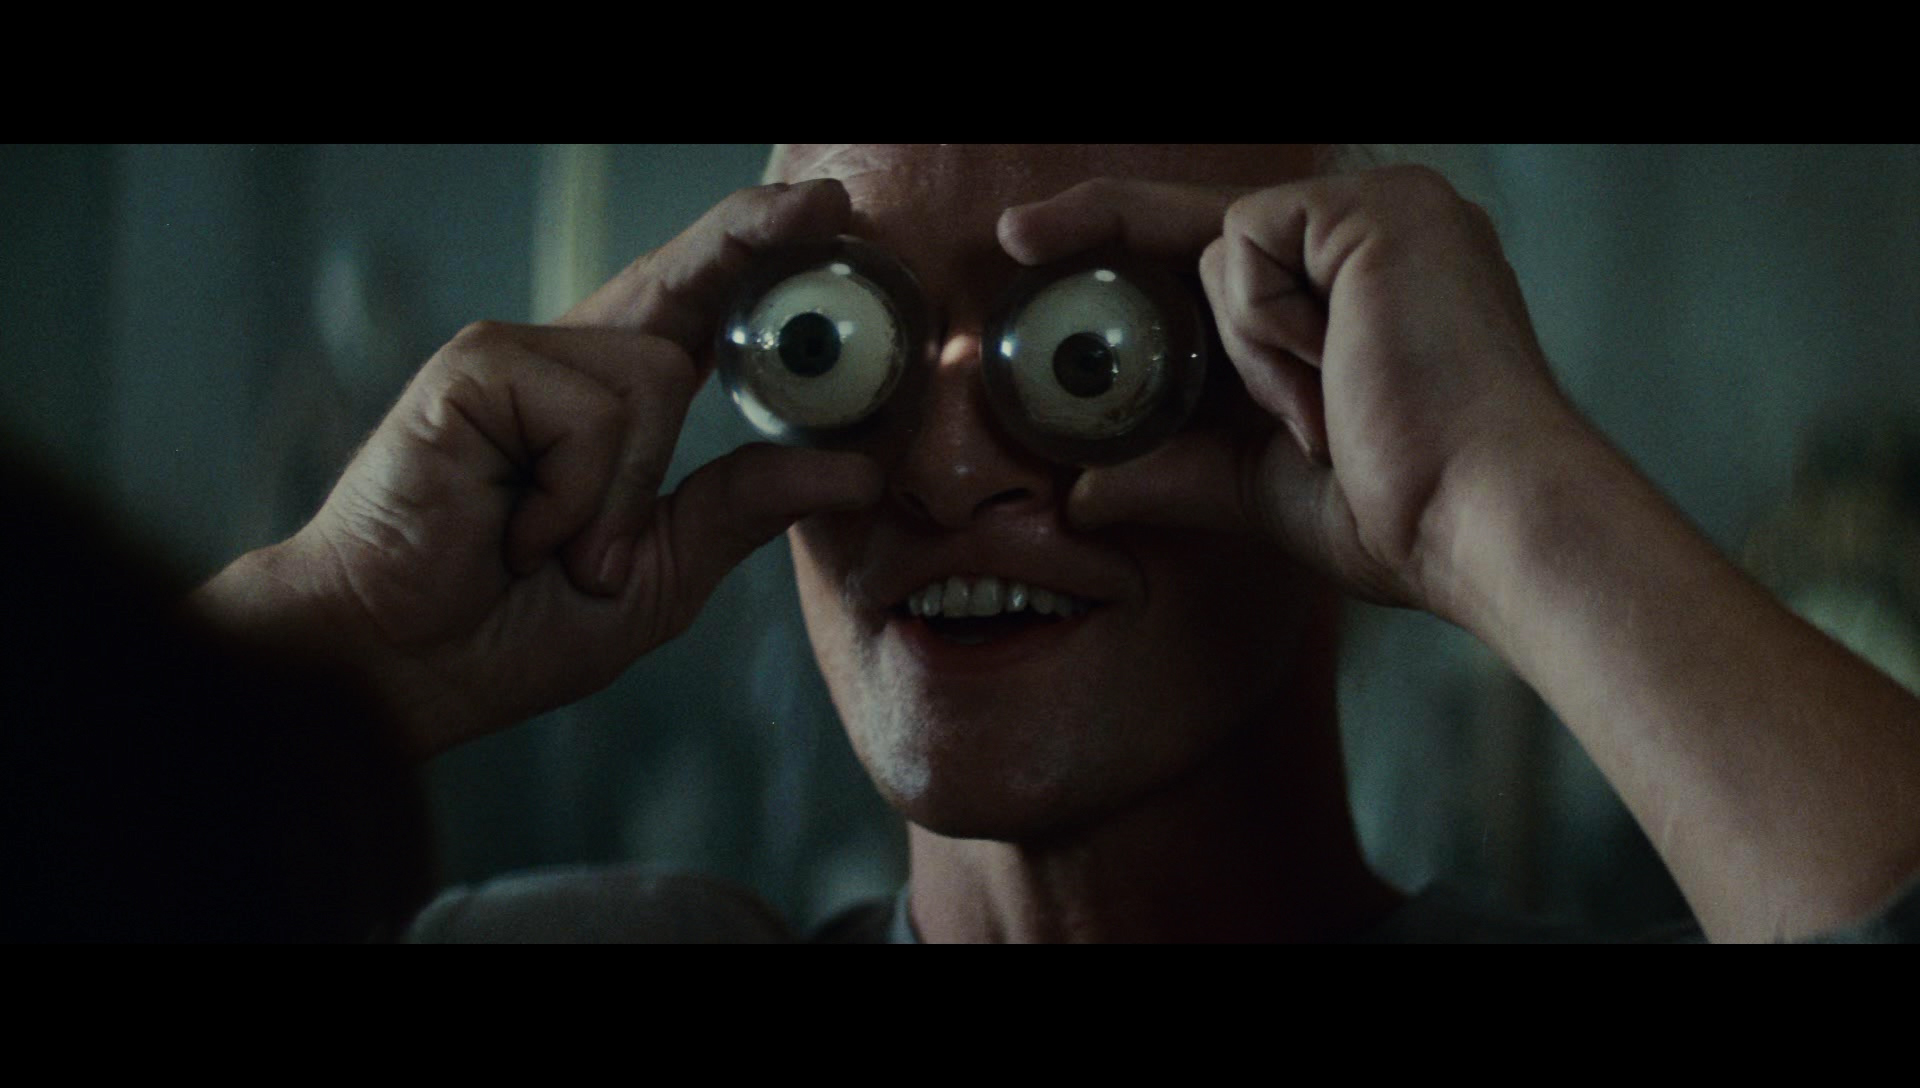 """Roy Batty: """"Chew, if only you could see what I've seen with your eyes!"""""""